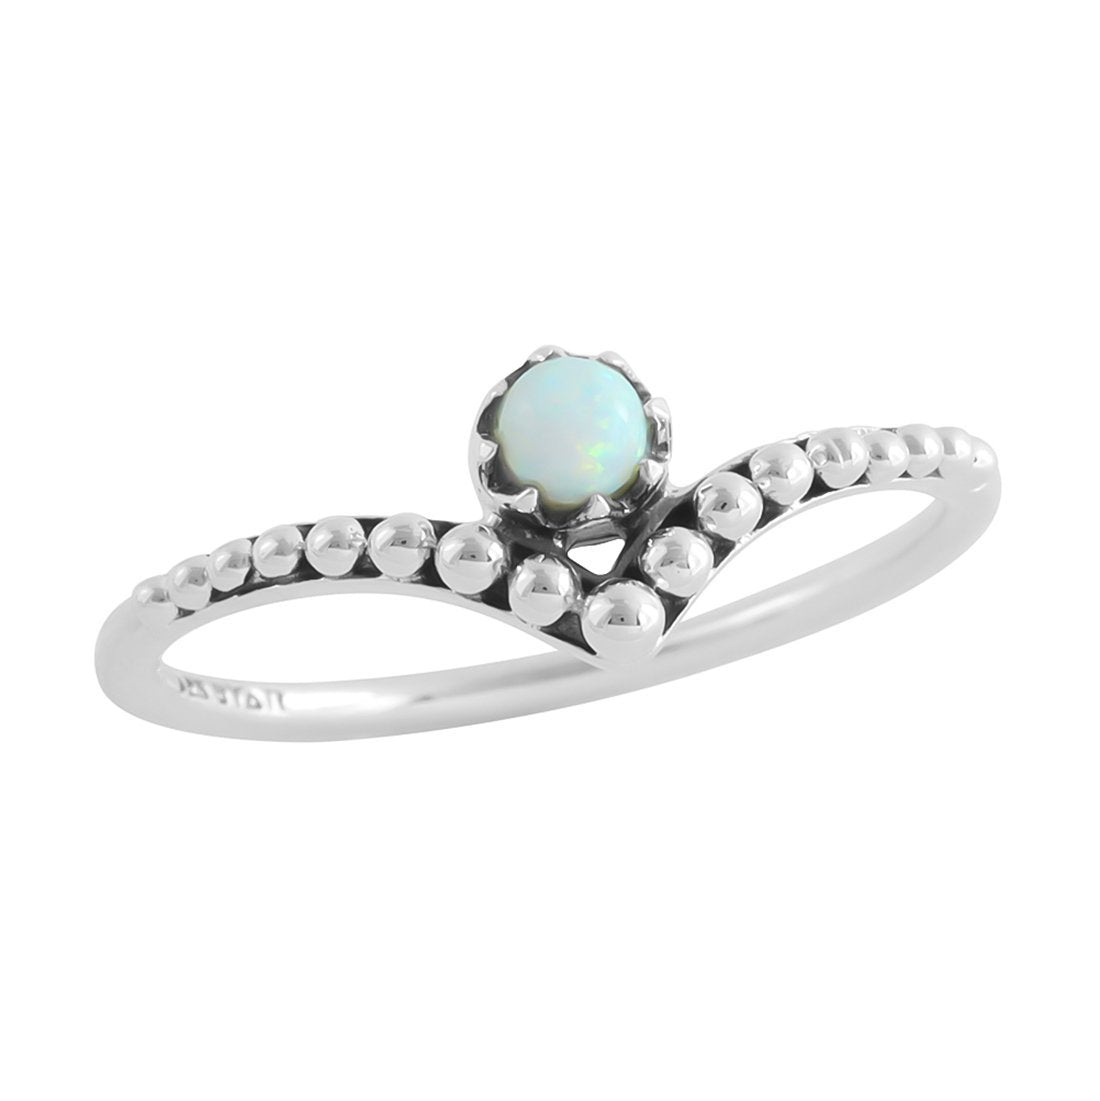 Midsummer Star Ring Dainty Spheroids Opal Ring